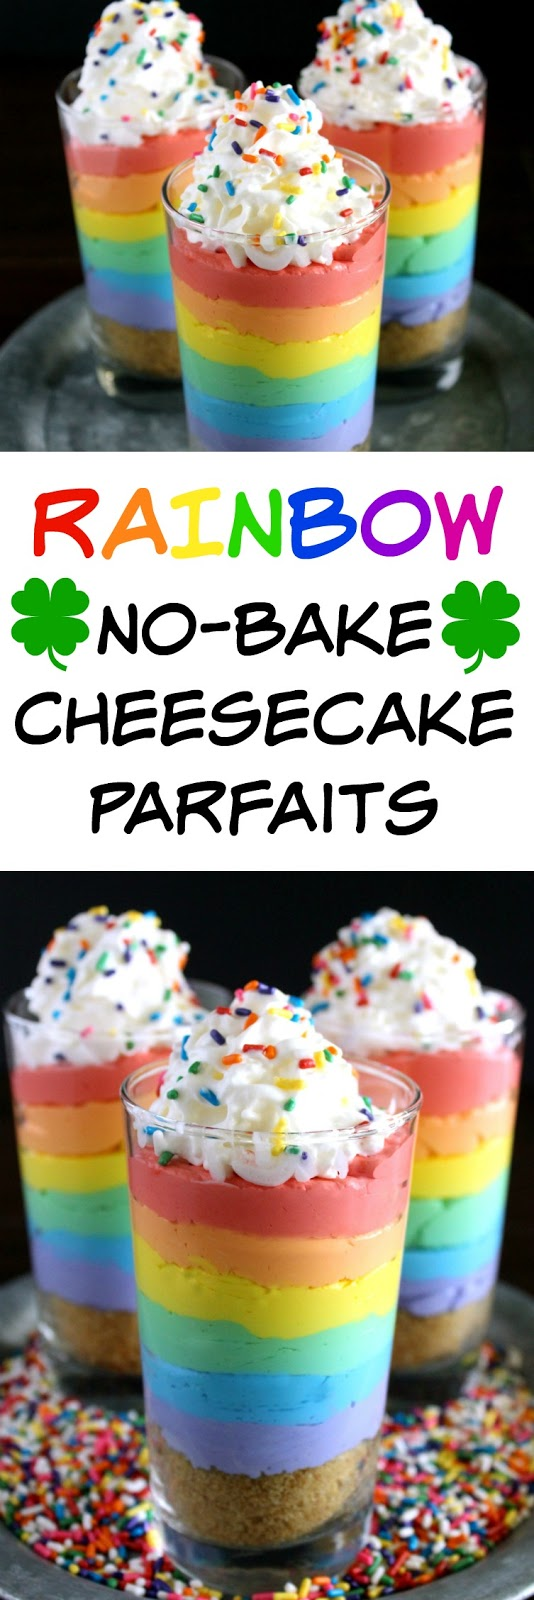 Rainbow No-Bake Cheesecake Parfaits from LoveandConfections.com